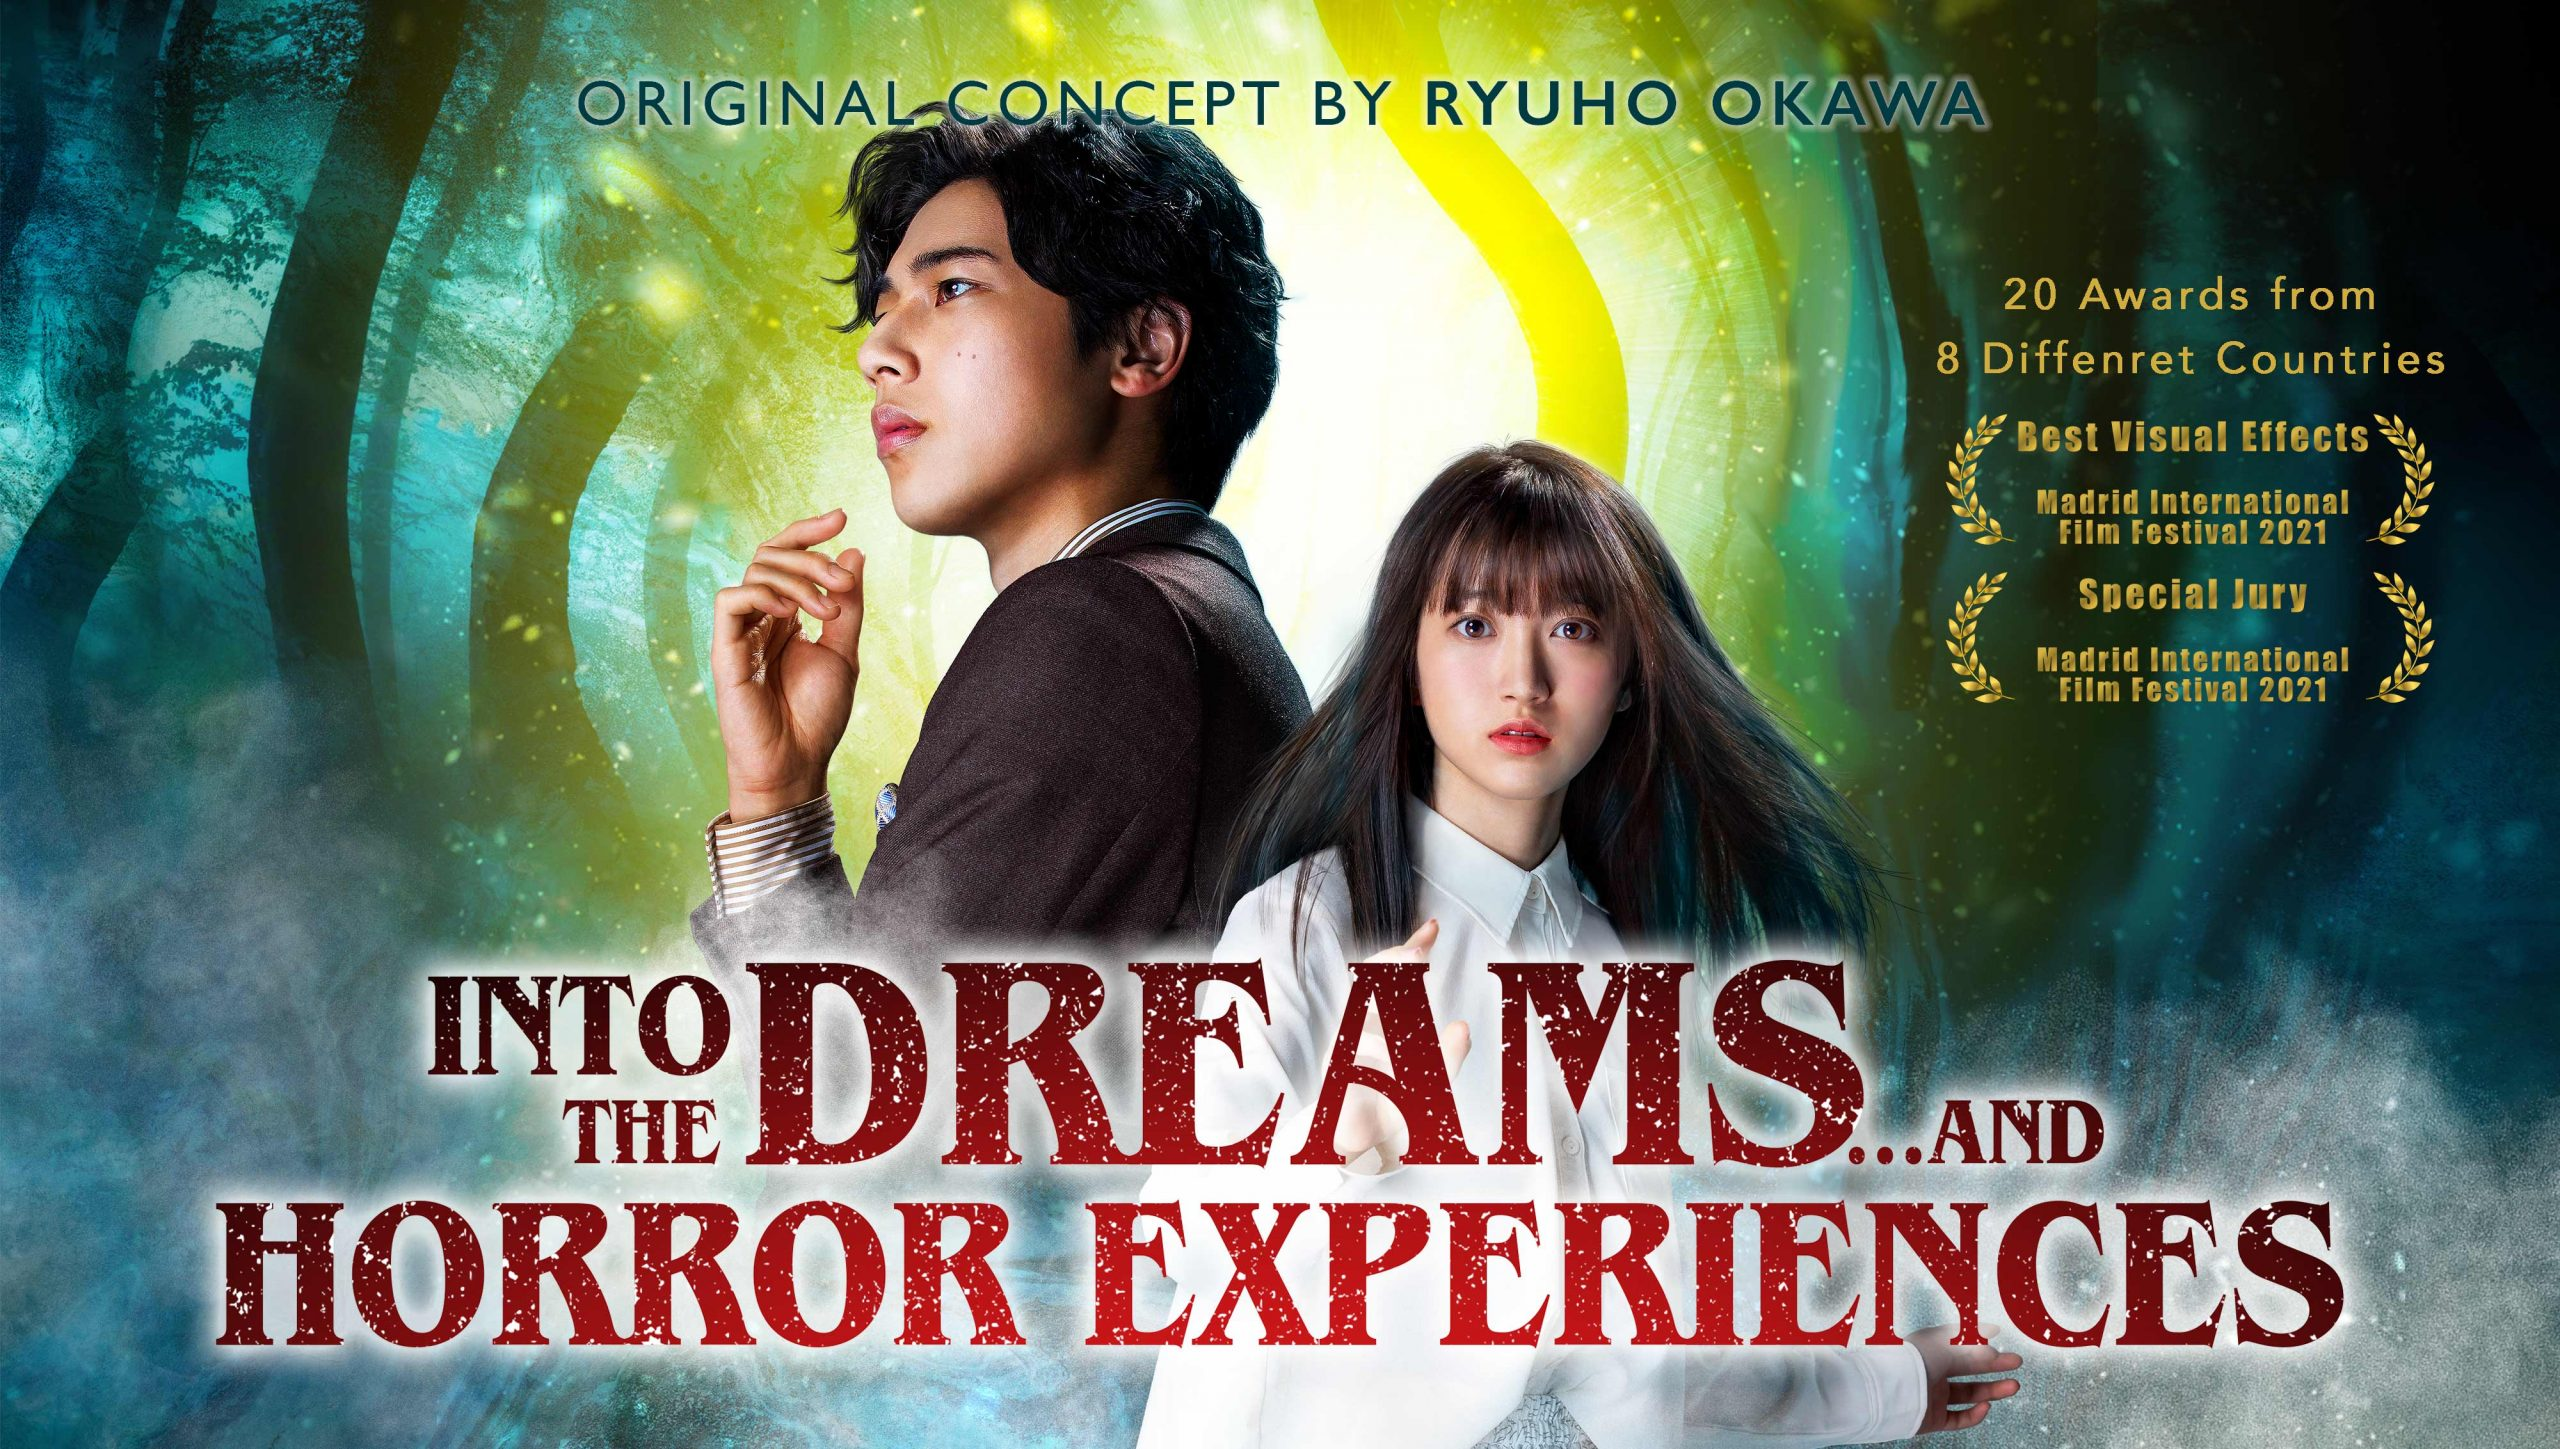 Into the Dreams...and Horror Experiences